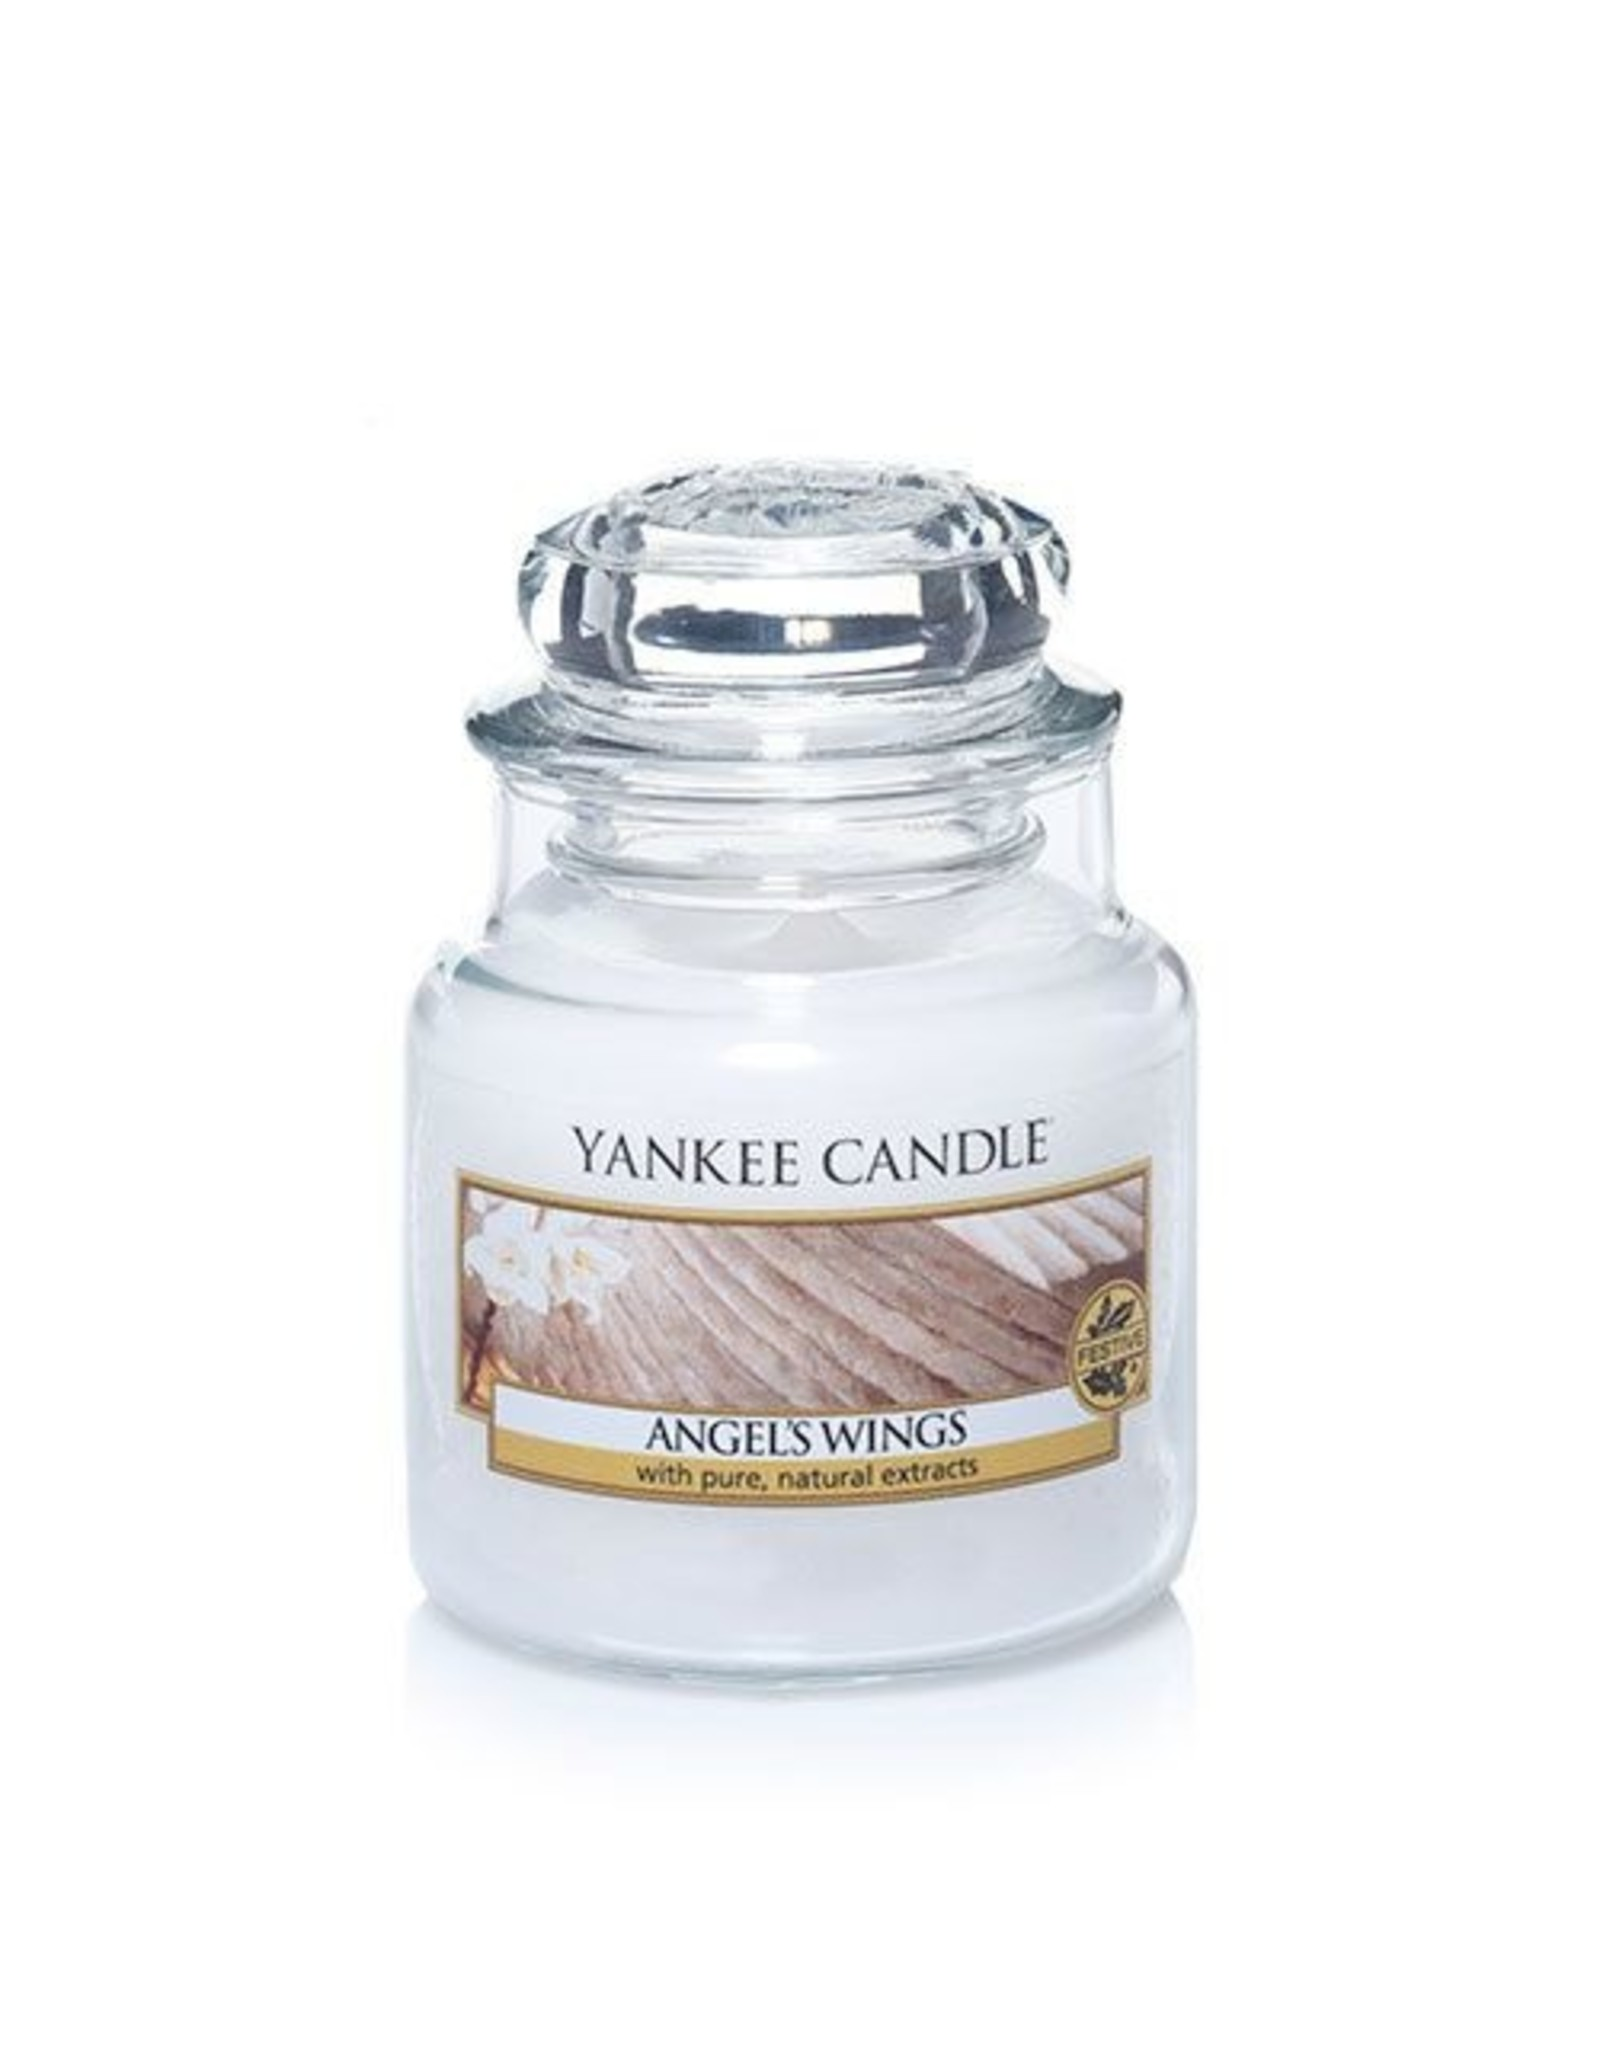 Yankee Candle Angel's Wings Yankee Candle Small